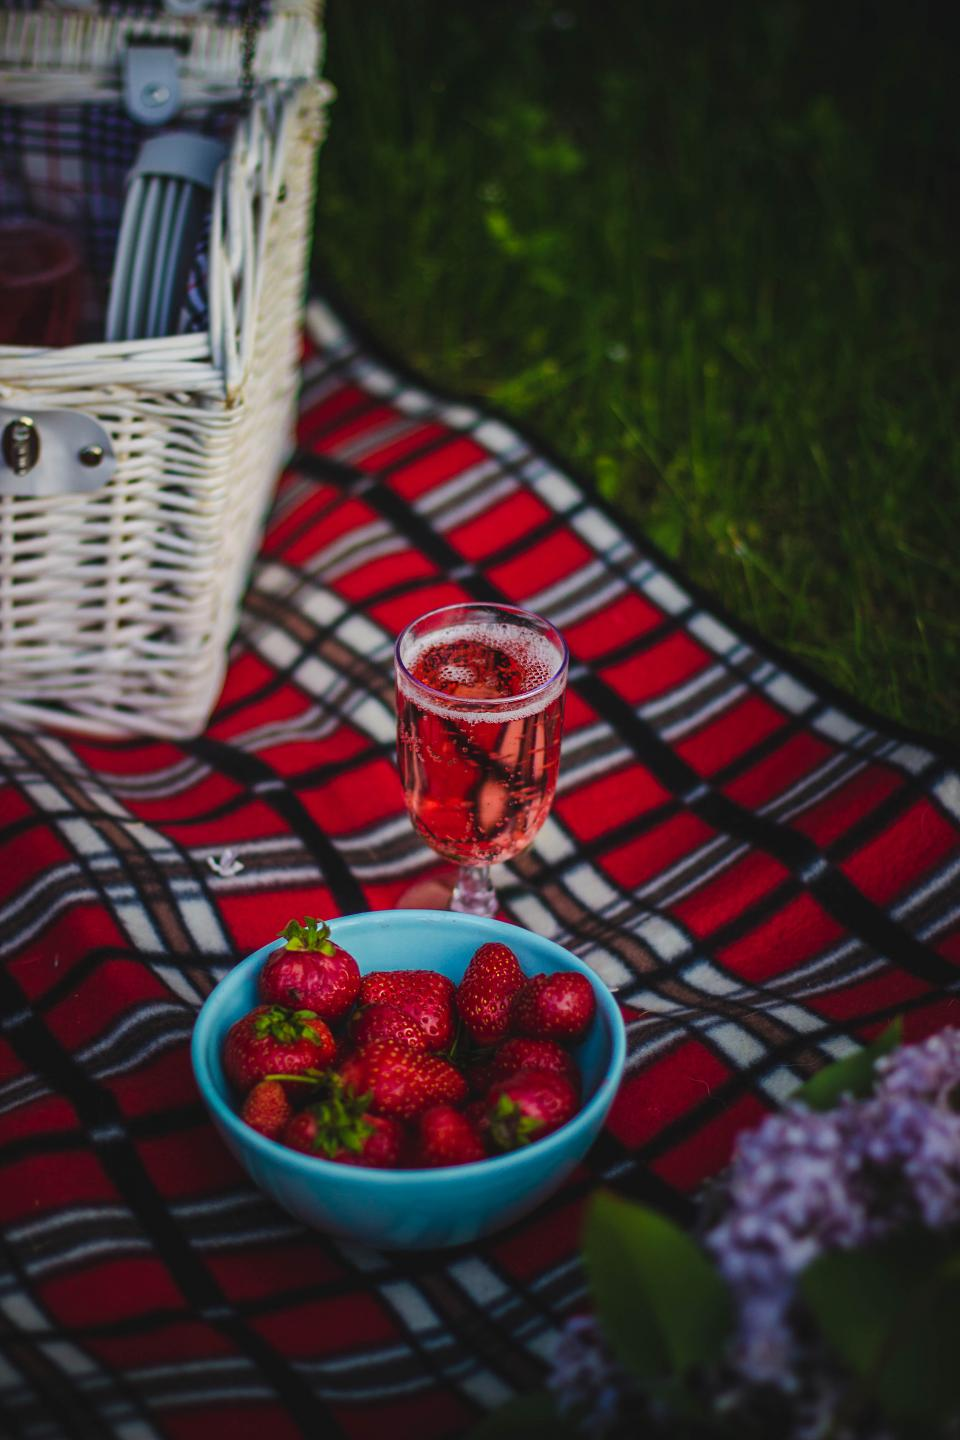 cloth picnic outdoor travel food glass drink strawberry fruit basket flower blur